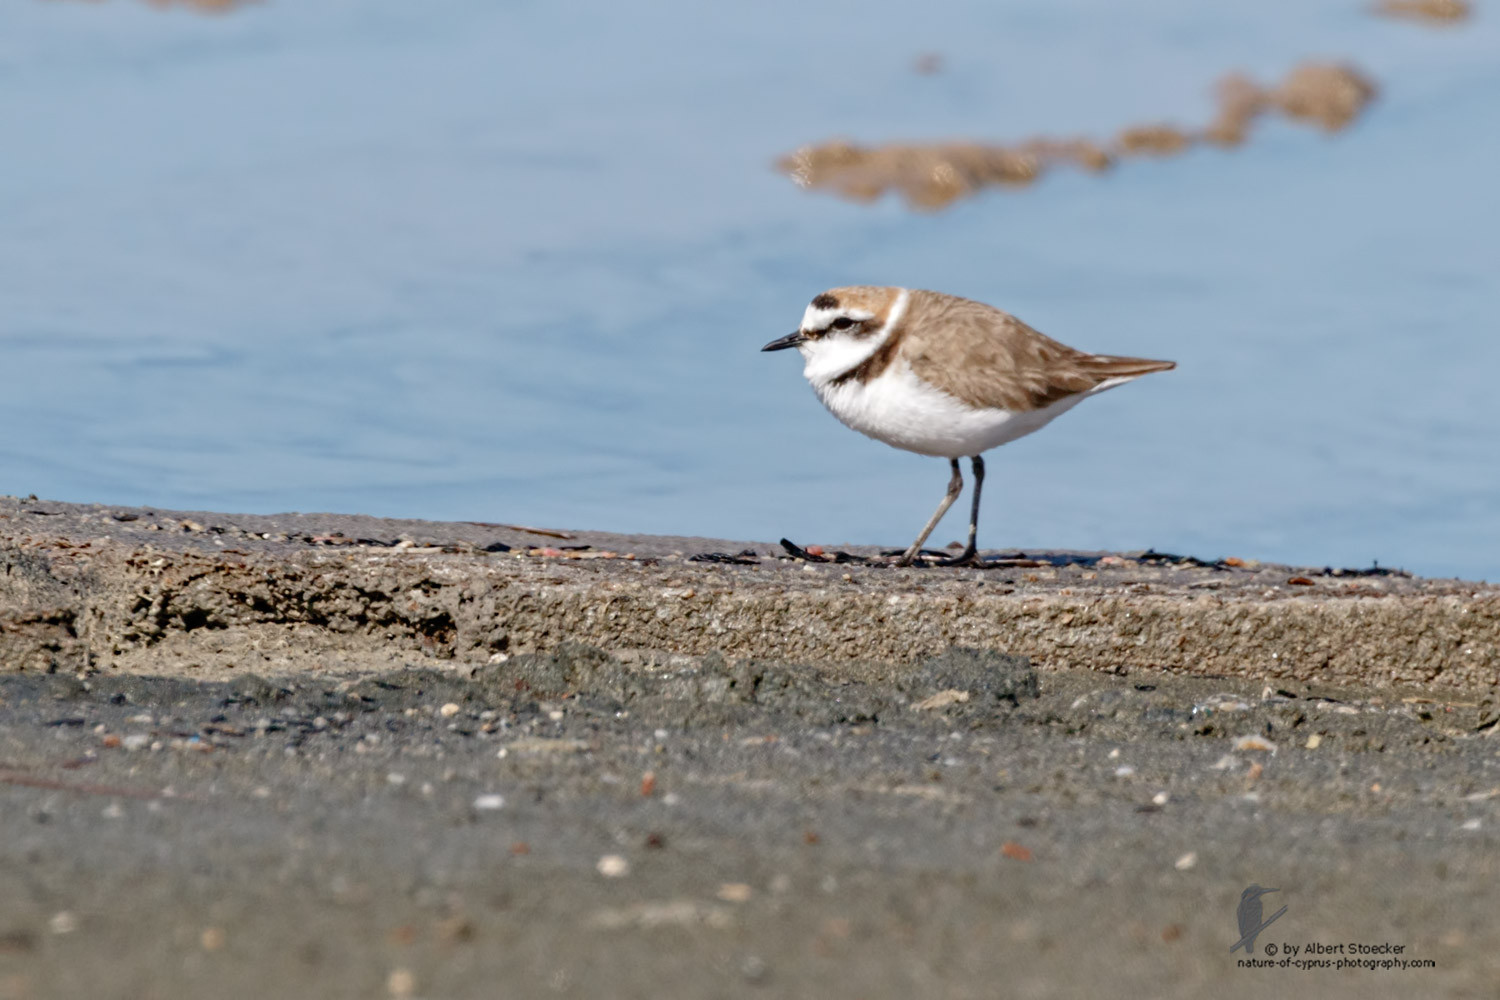 Charadrius bubius - Little Ringed Plover - Flussregenpfeifer, Cyprus, Zakai Marsh, March 2016